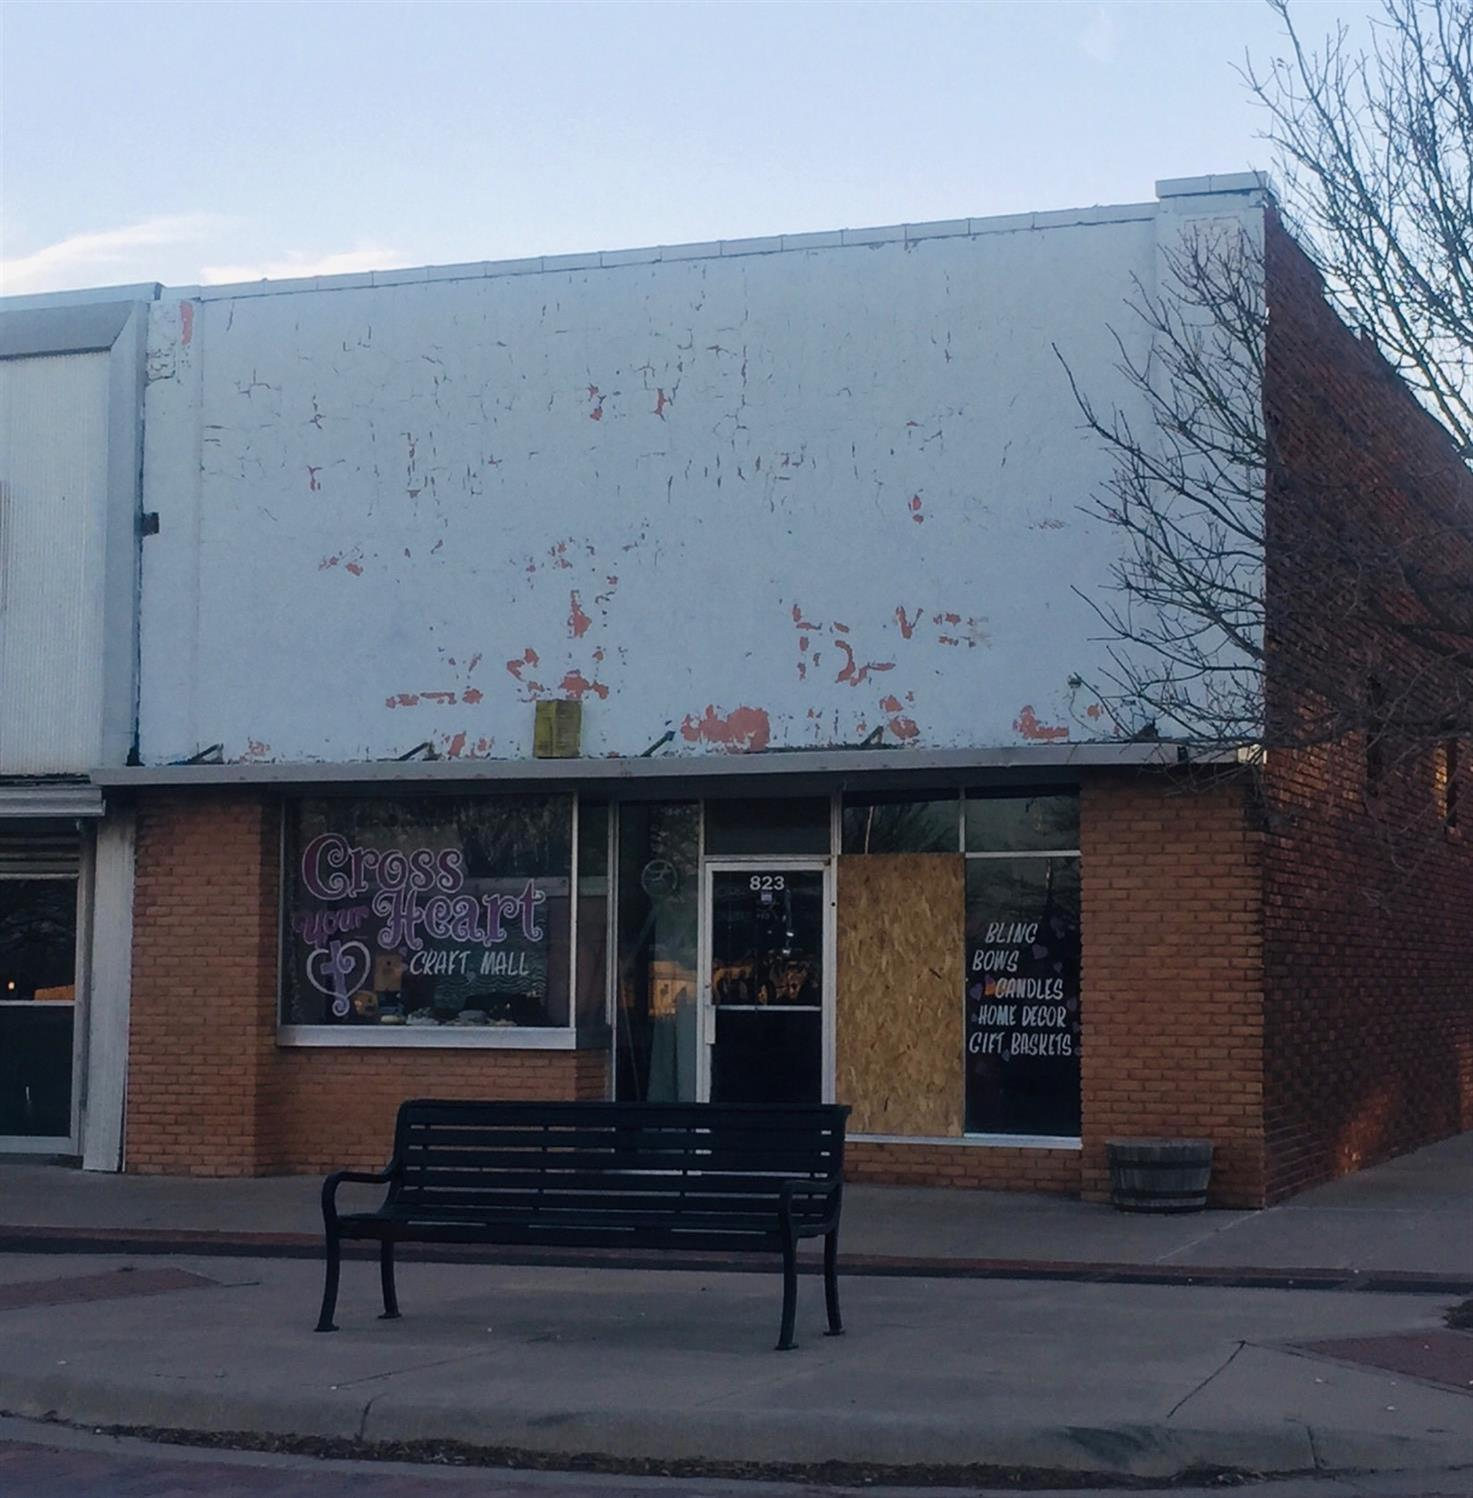 The possibilities are endless with this gorgeous vintage space in the heart of downtown Ralls! Previously a sandwich shop, a floral boutique and a craft mall, this building can be whatever you need. You'll find storage upstairs or a fantastic second workspace  it depends on your vision!